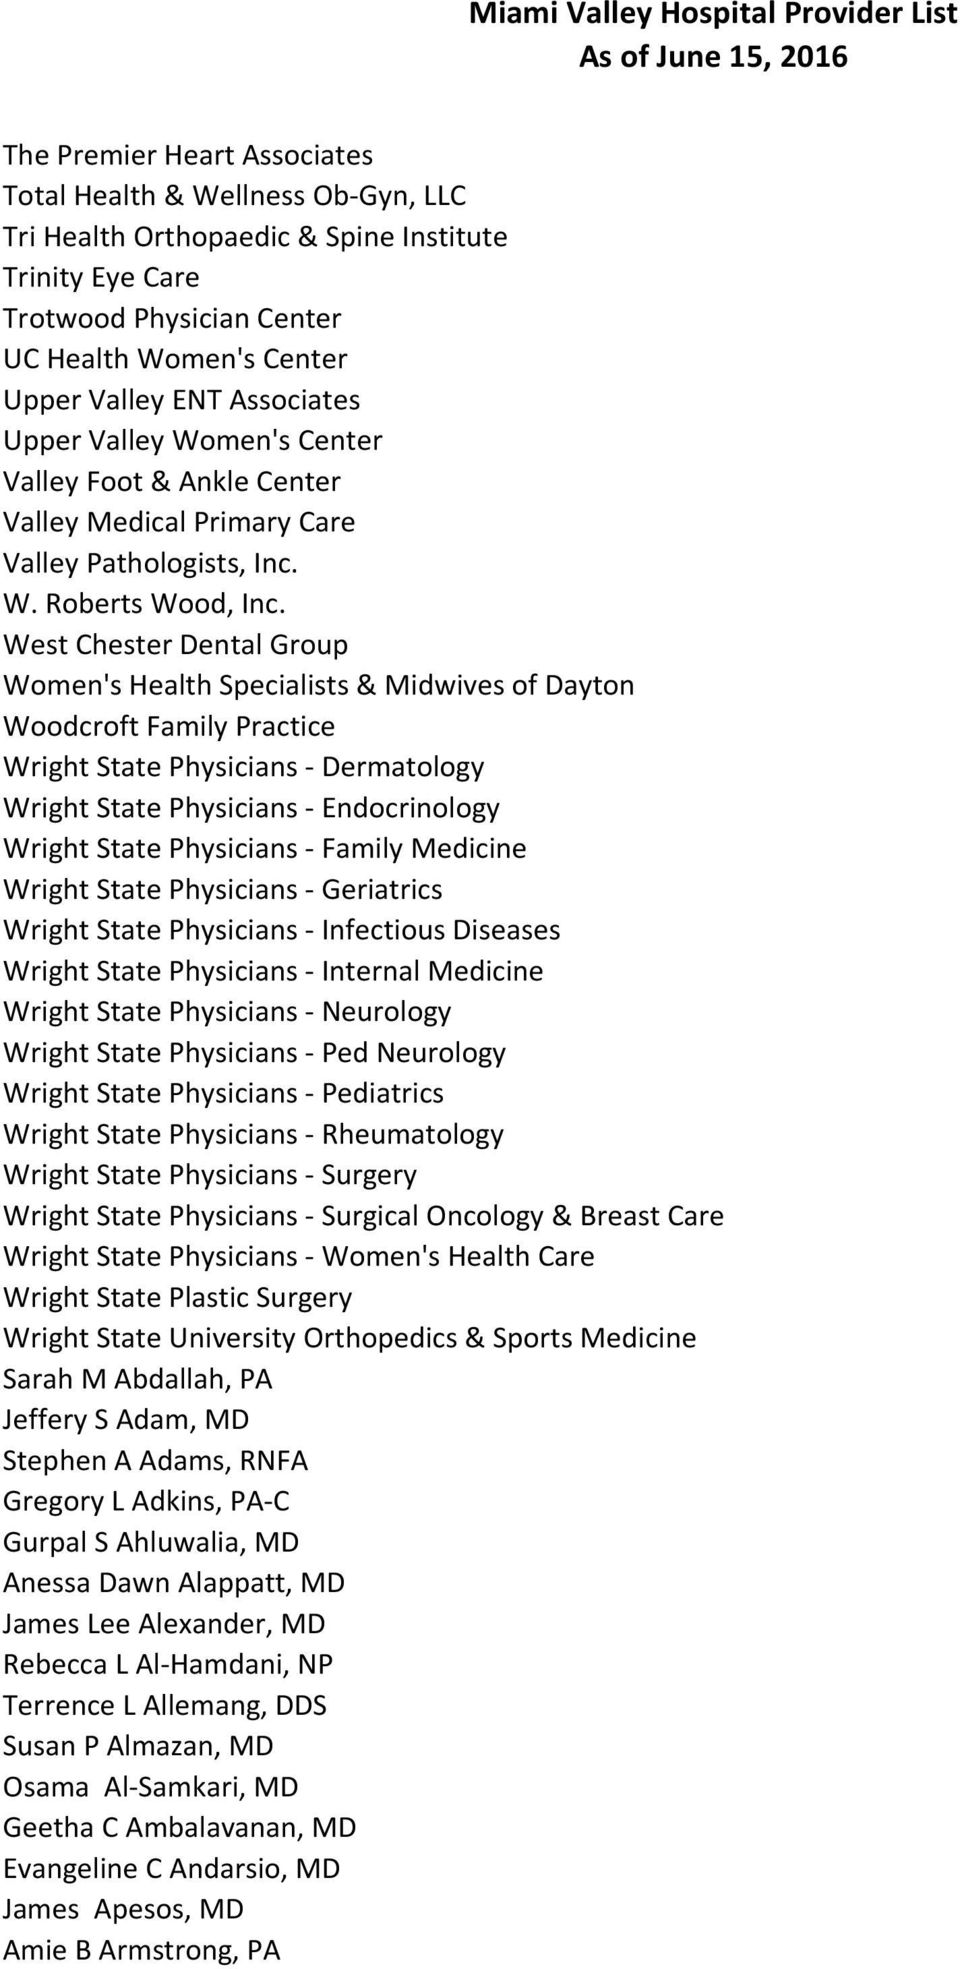 Atrium Medical Center Provider List As of June 15, PDF